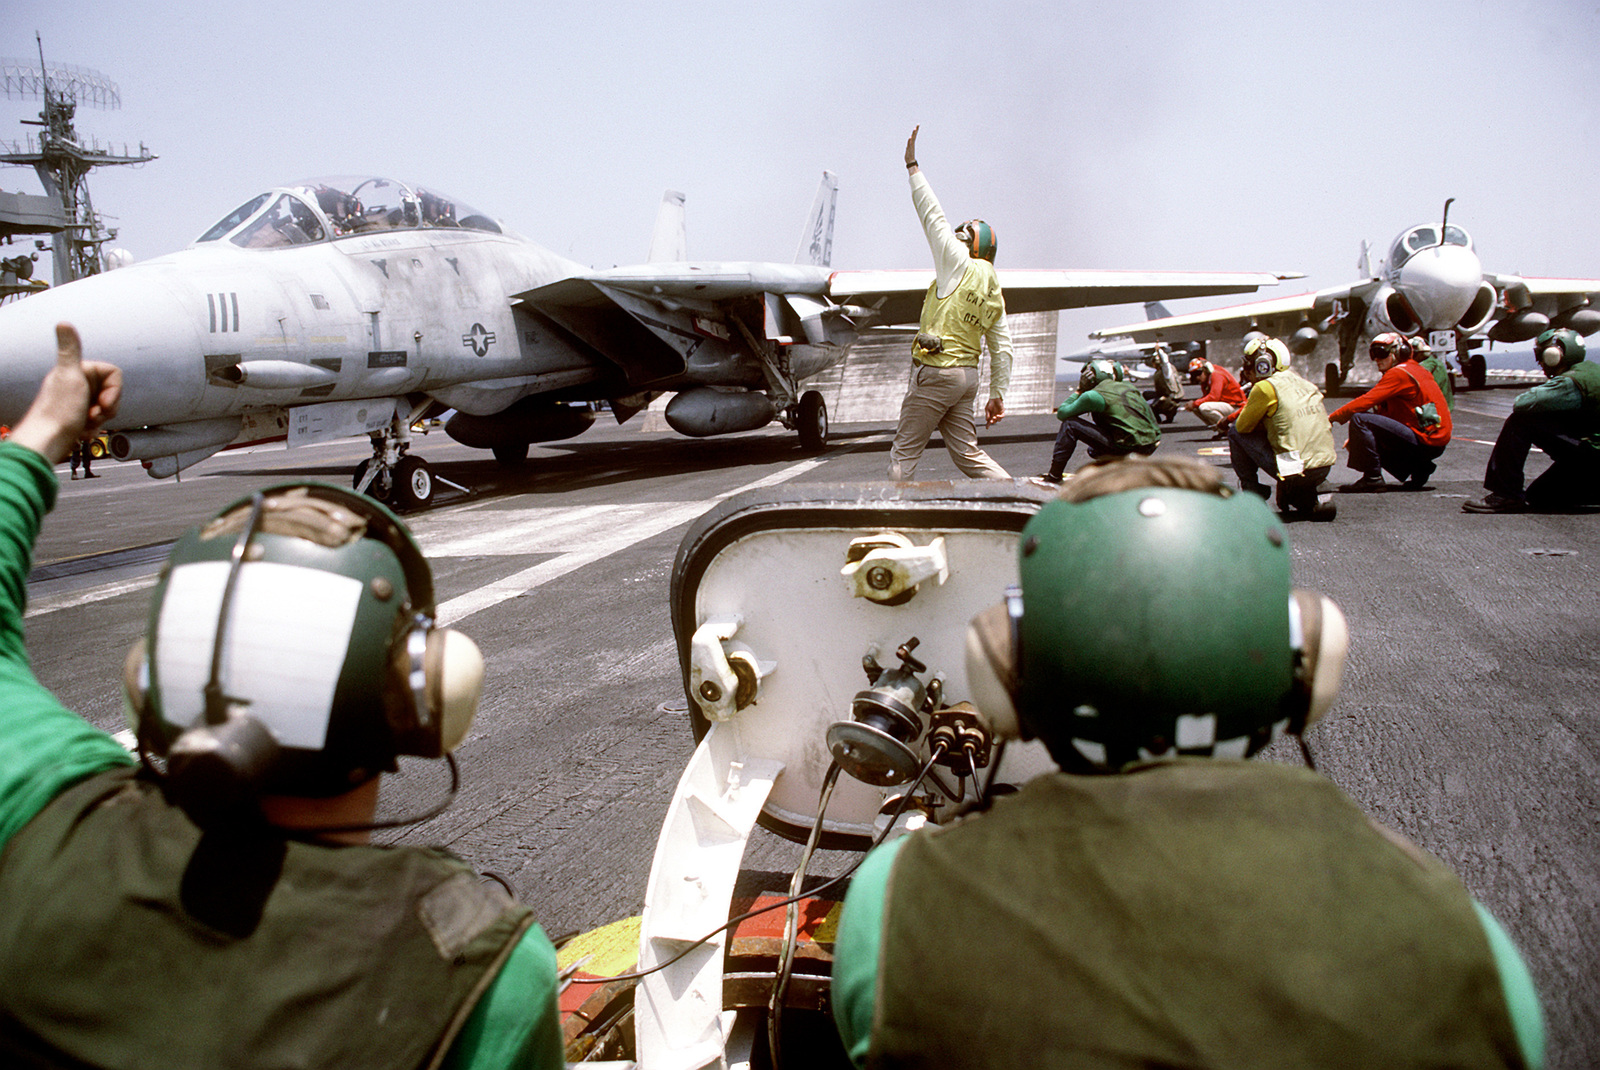 Crewmen prepare to launch an F-14A Tomcat aircraft on the flight deck of the nuclear-powered aircraft carrier USS DWIGHT D. EISENHOWER (CVN-69). An A-6E Intruder aircraft is parked in the background